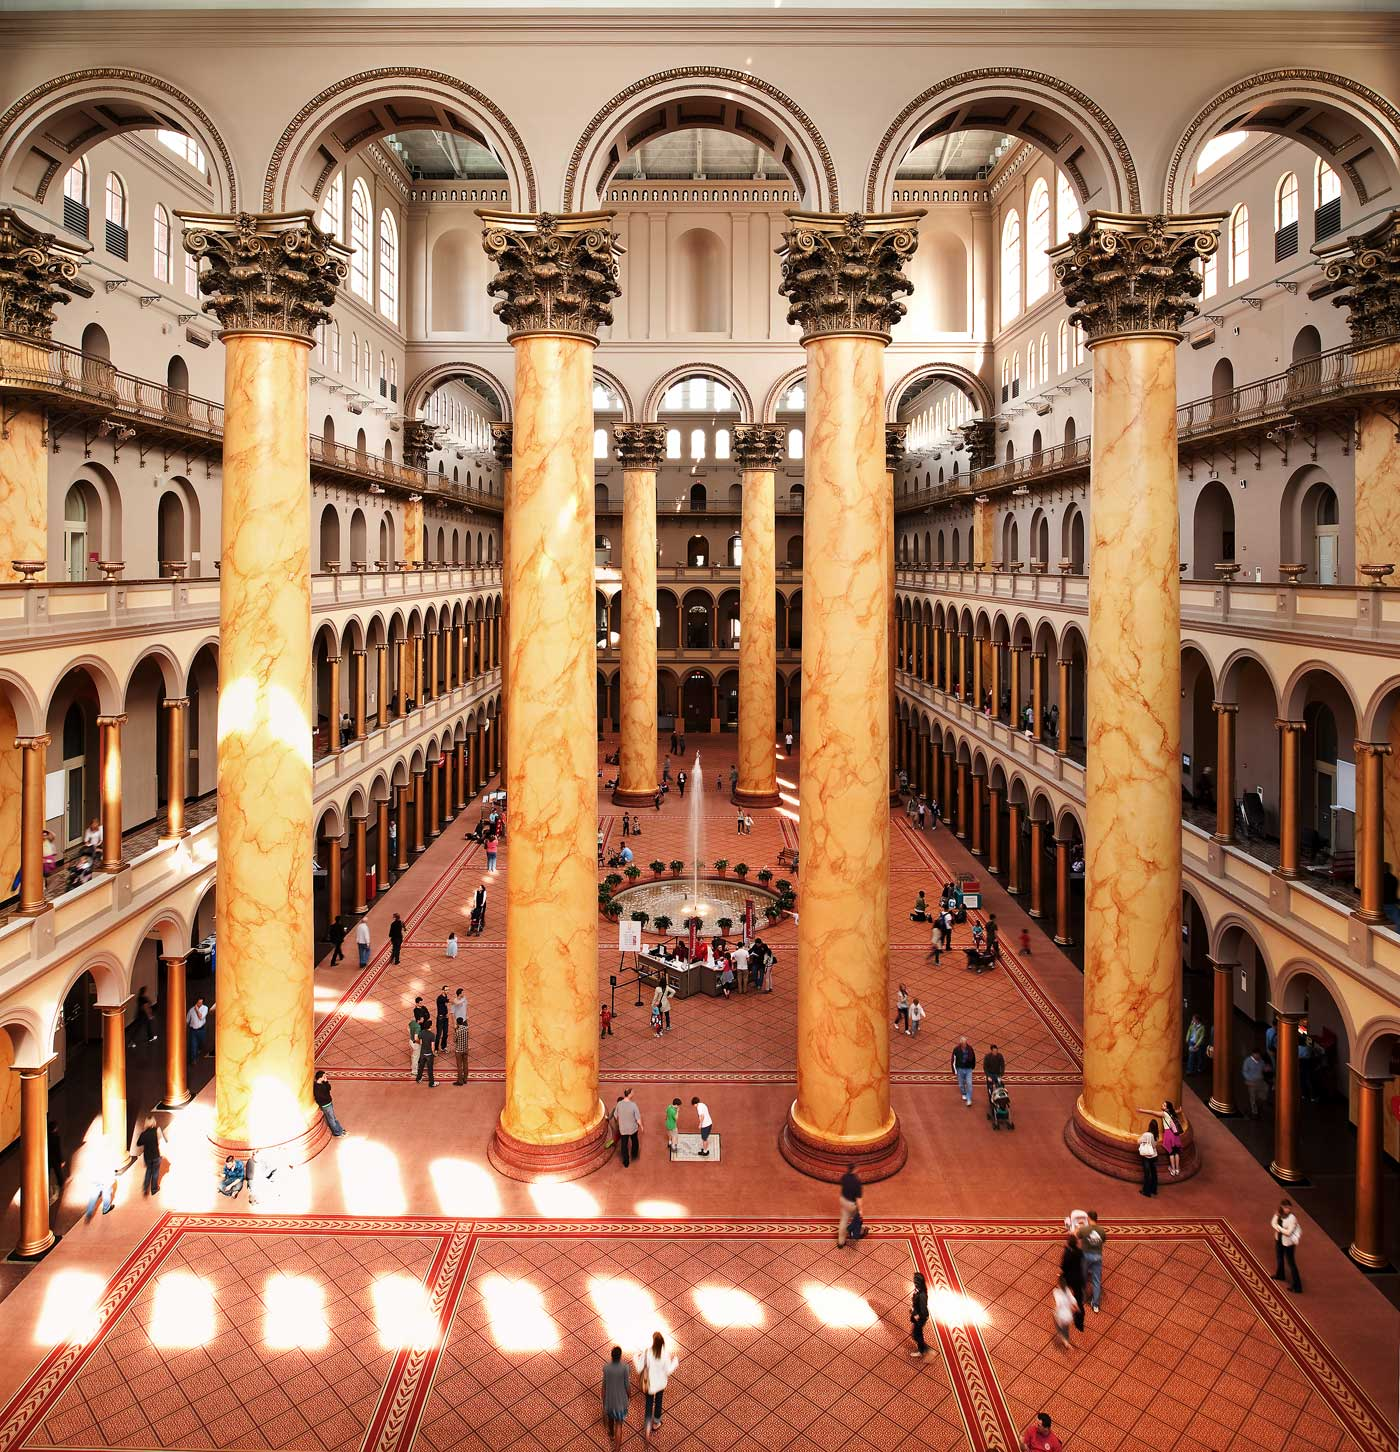 The Great Hall at the National Building Museum